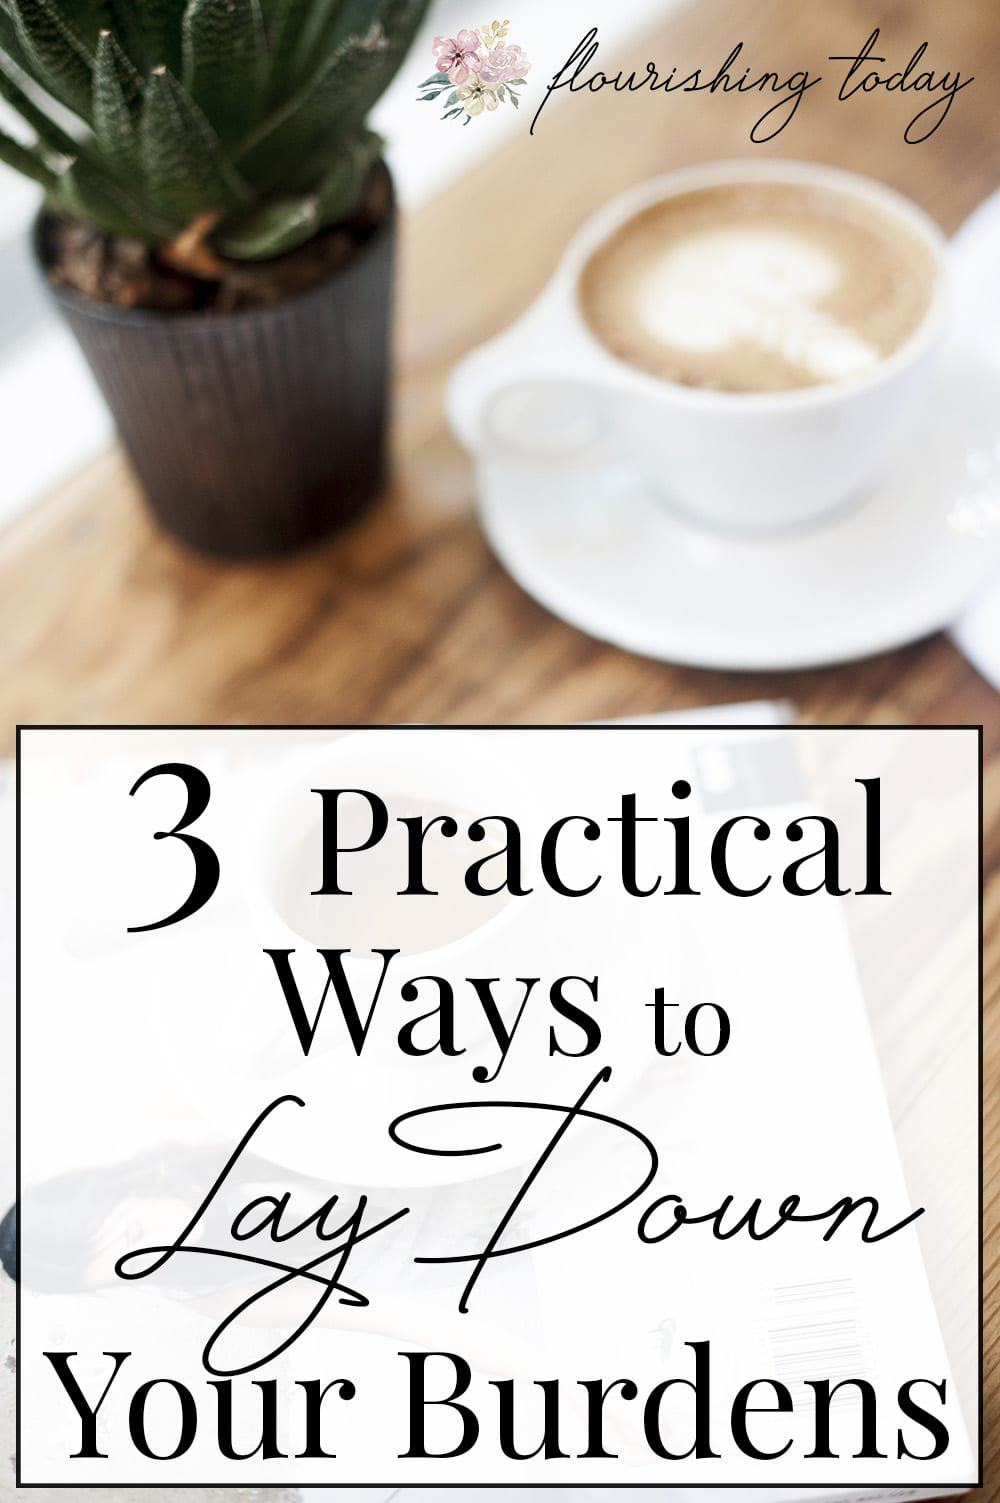 Are you overwhelmed by the burdens you carry? If you are feeling the heaviness from your load, join us for 3 Practical ways to lay down your burdens. #burdens #laydownyourburdens #overwhelm #overcome #stress